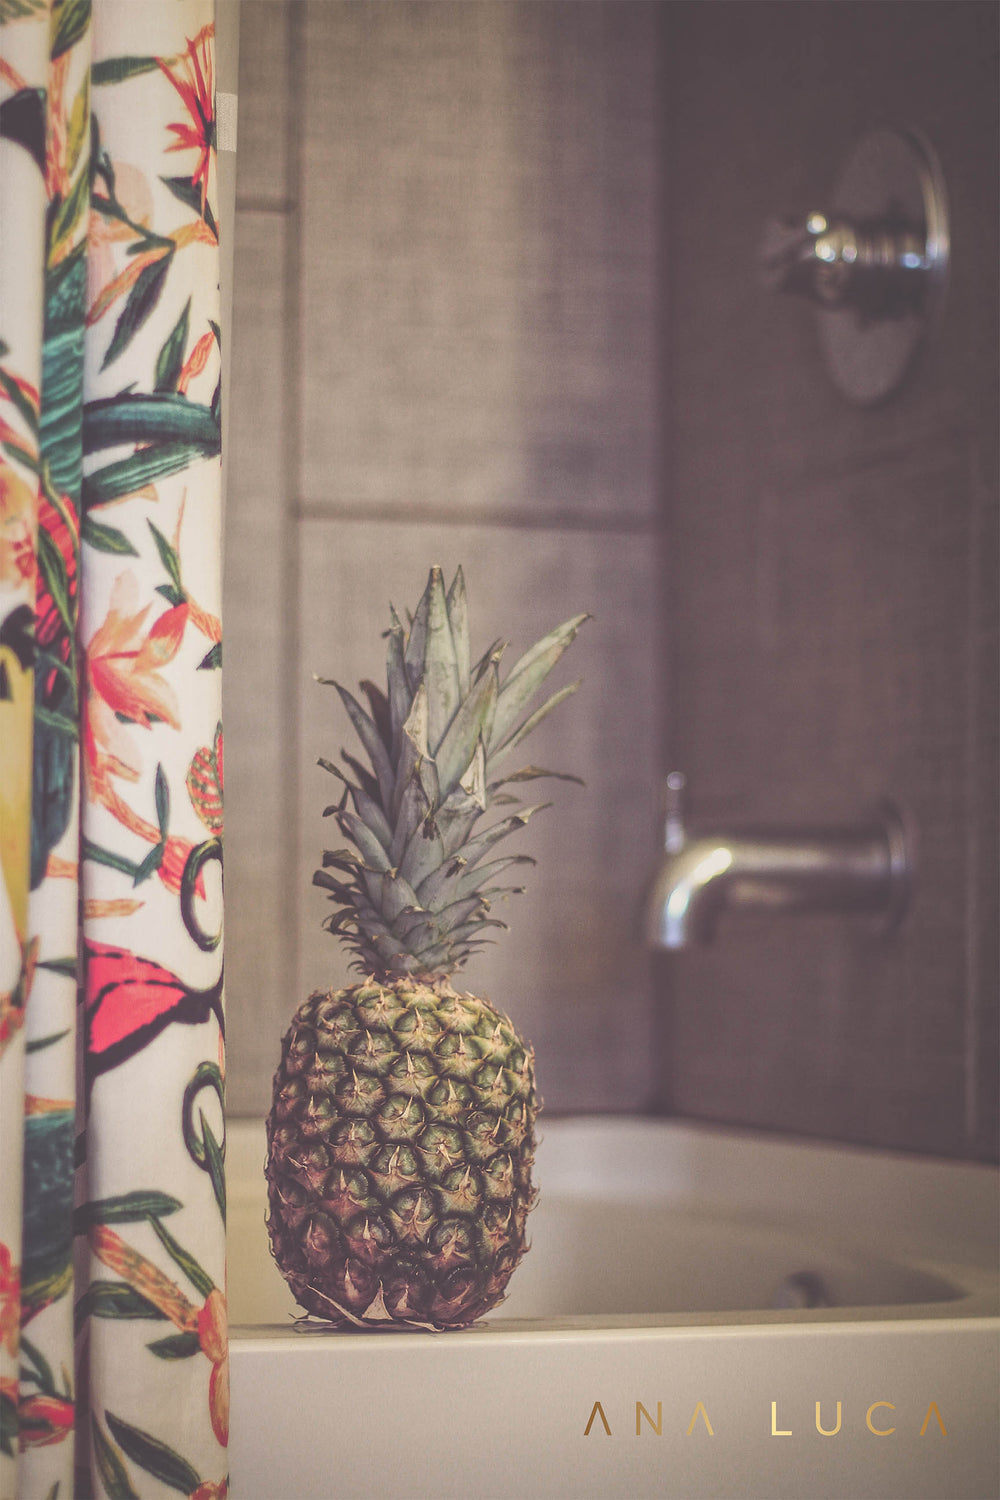 Pineapple Showers Art by Ana Luca